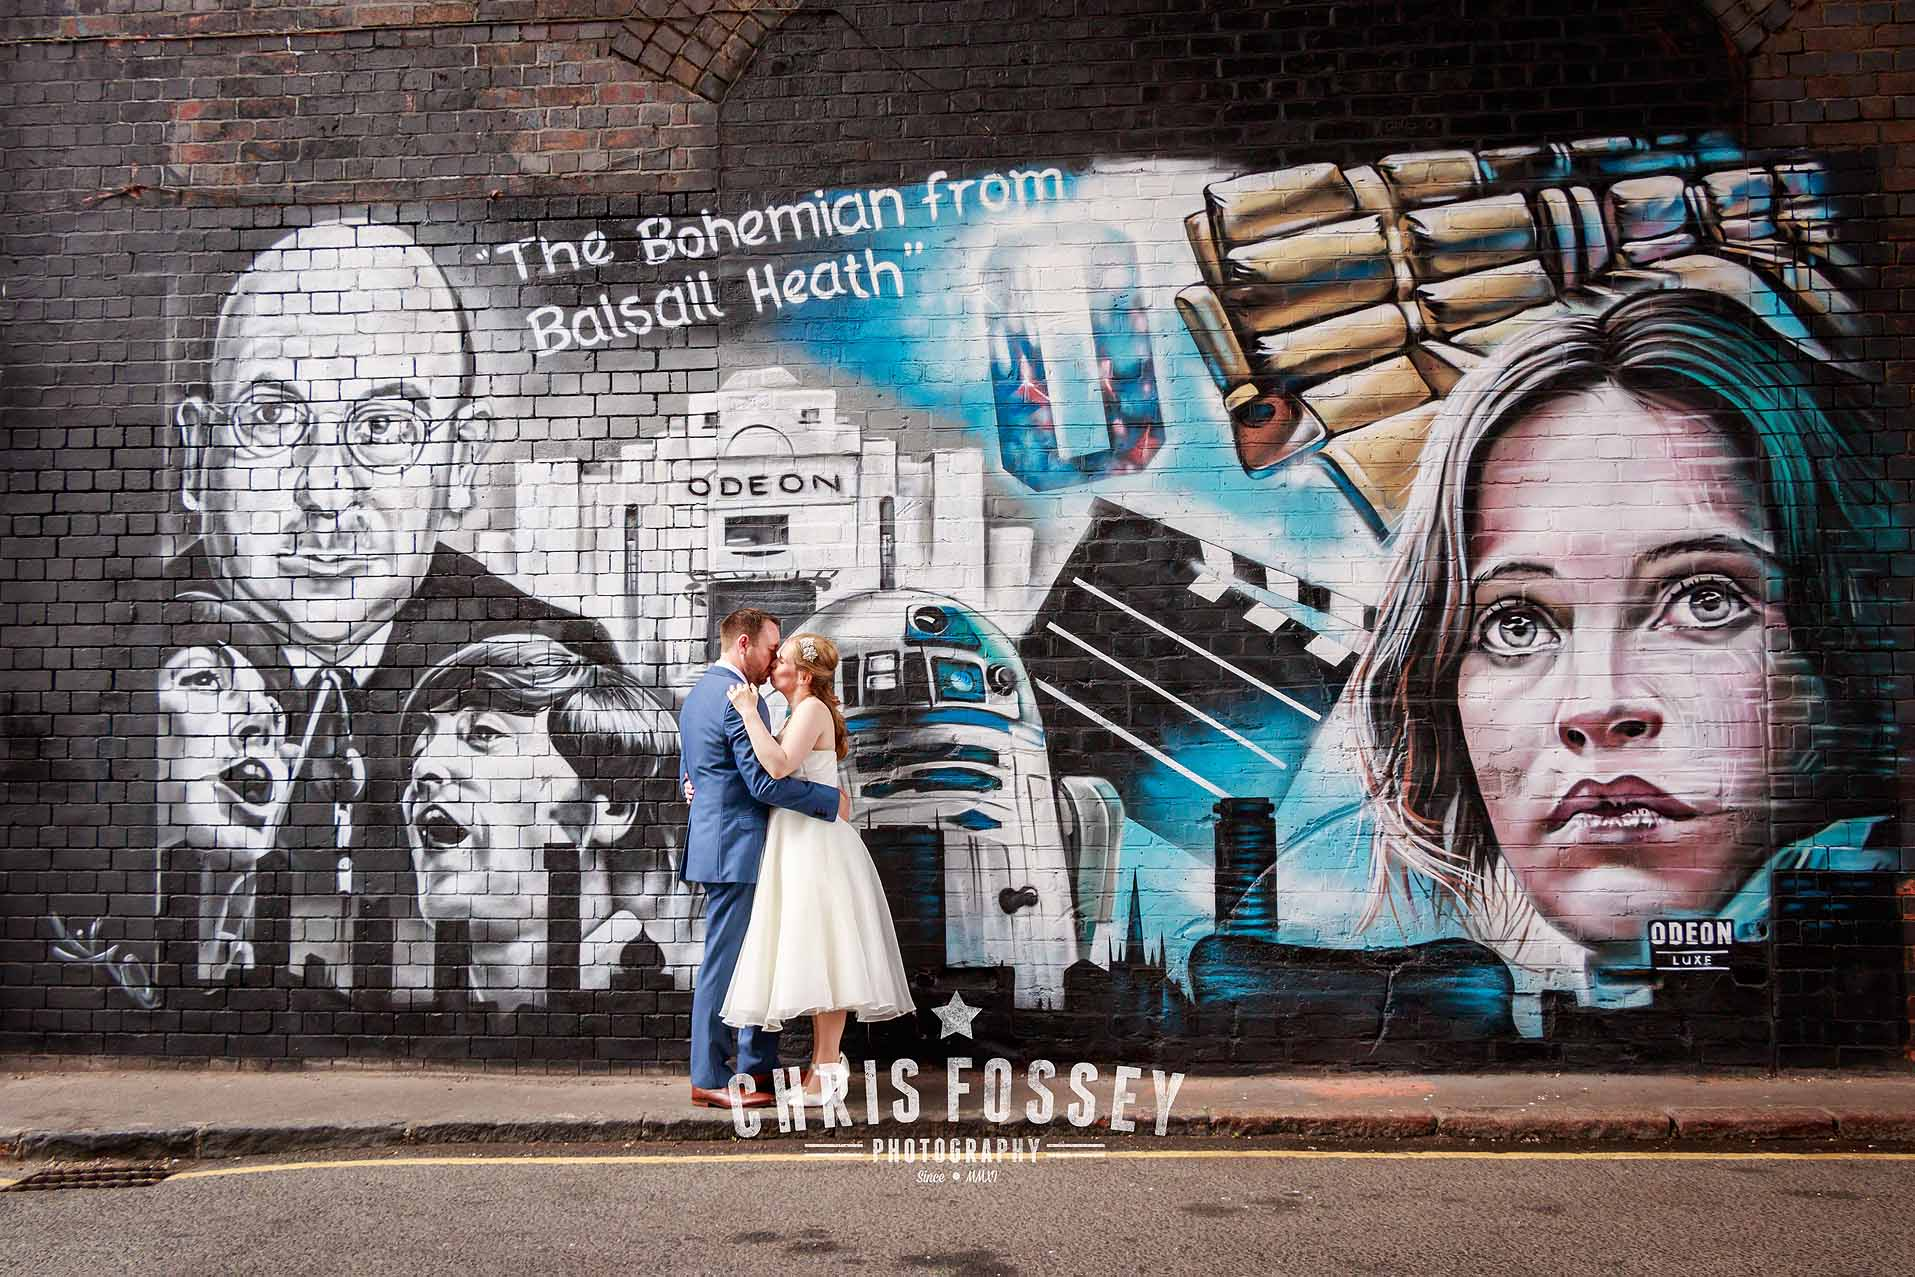 Digbeth-fazeleystudios-wedding-photography-sarah-paul (37 of 77)